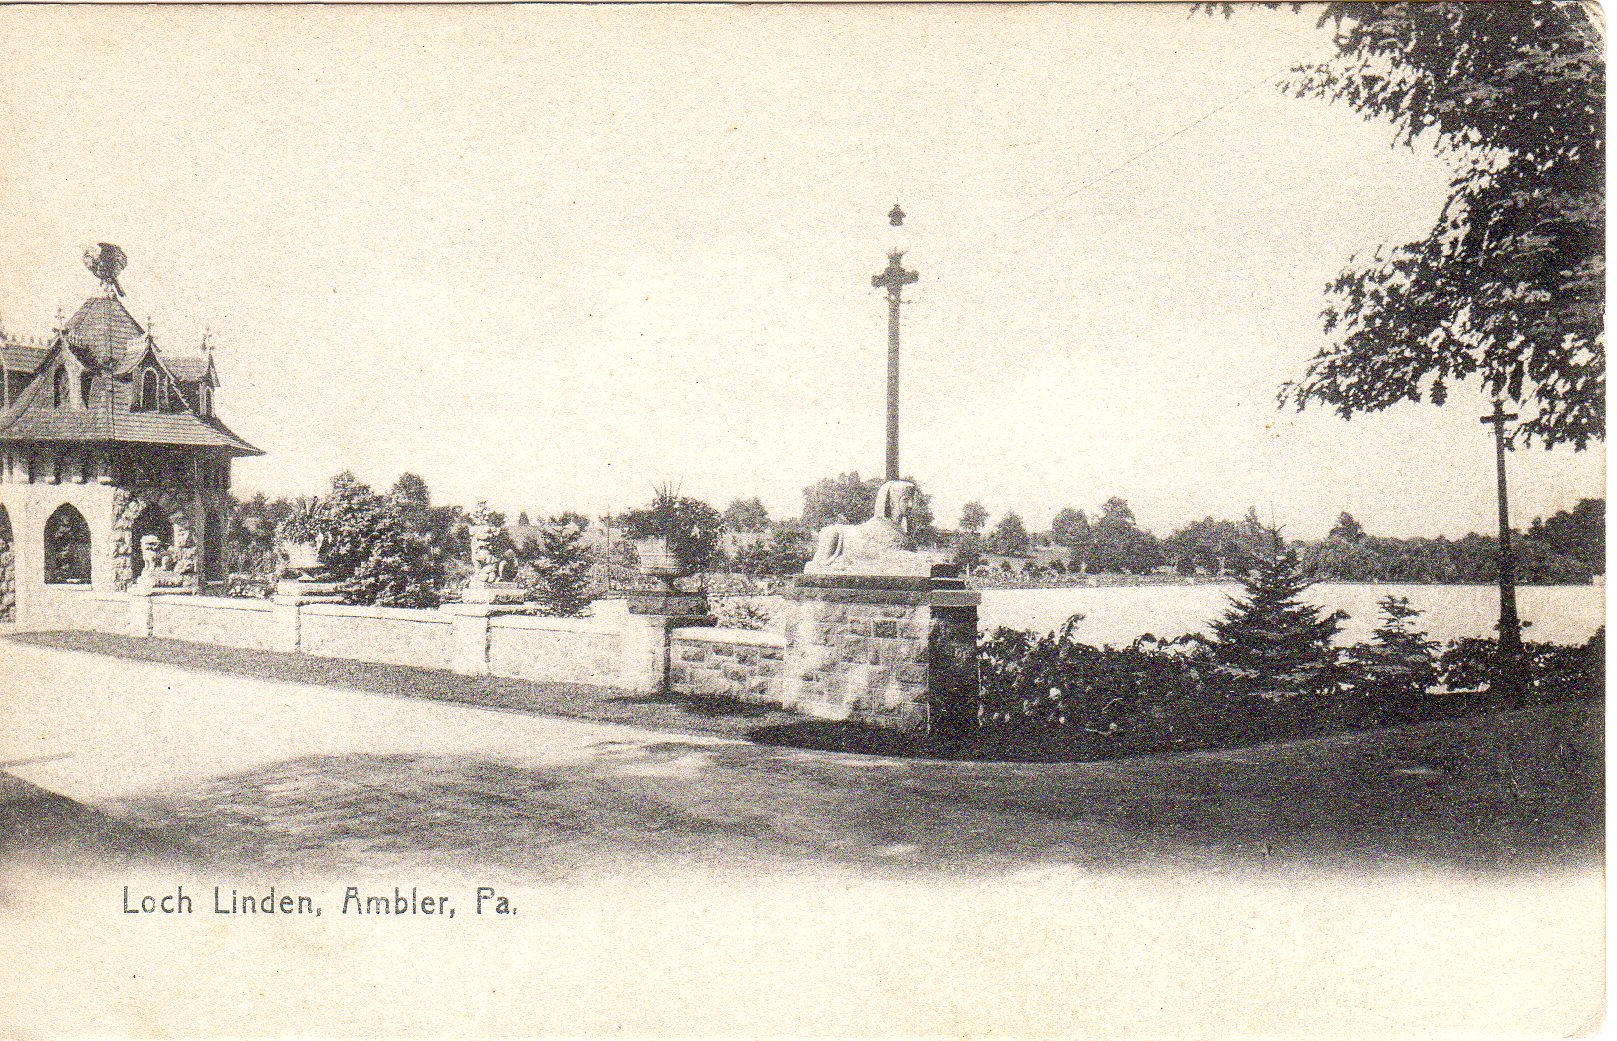 Post Card Collection (E Simon)_2682_35_Loch Linden, Ambler, Pa